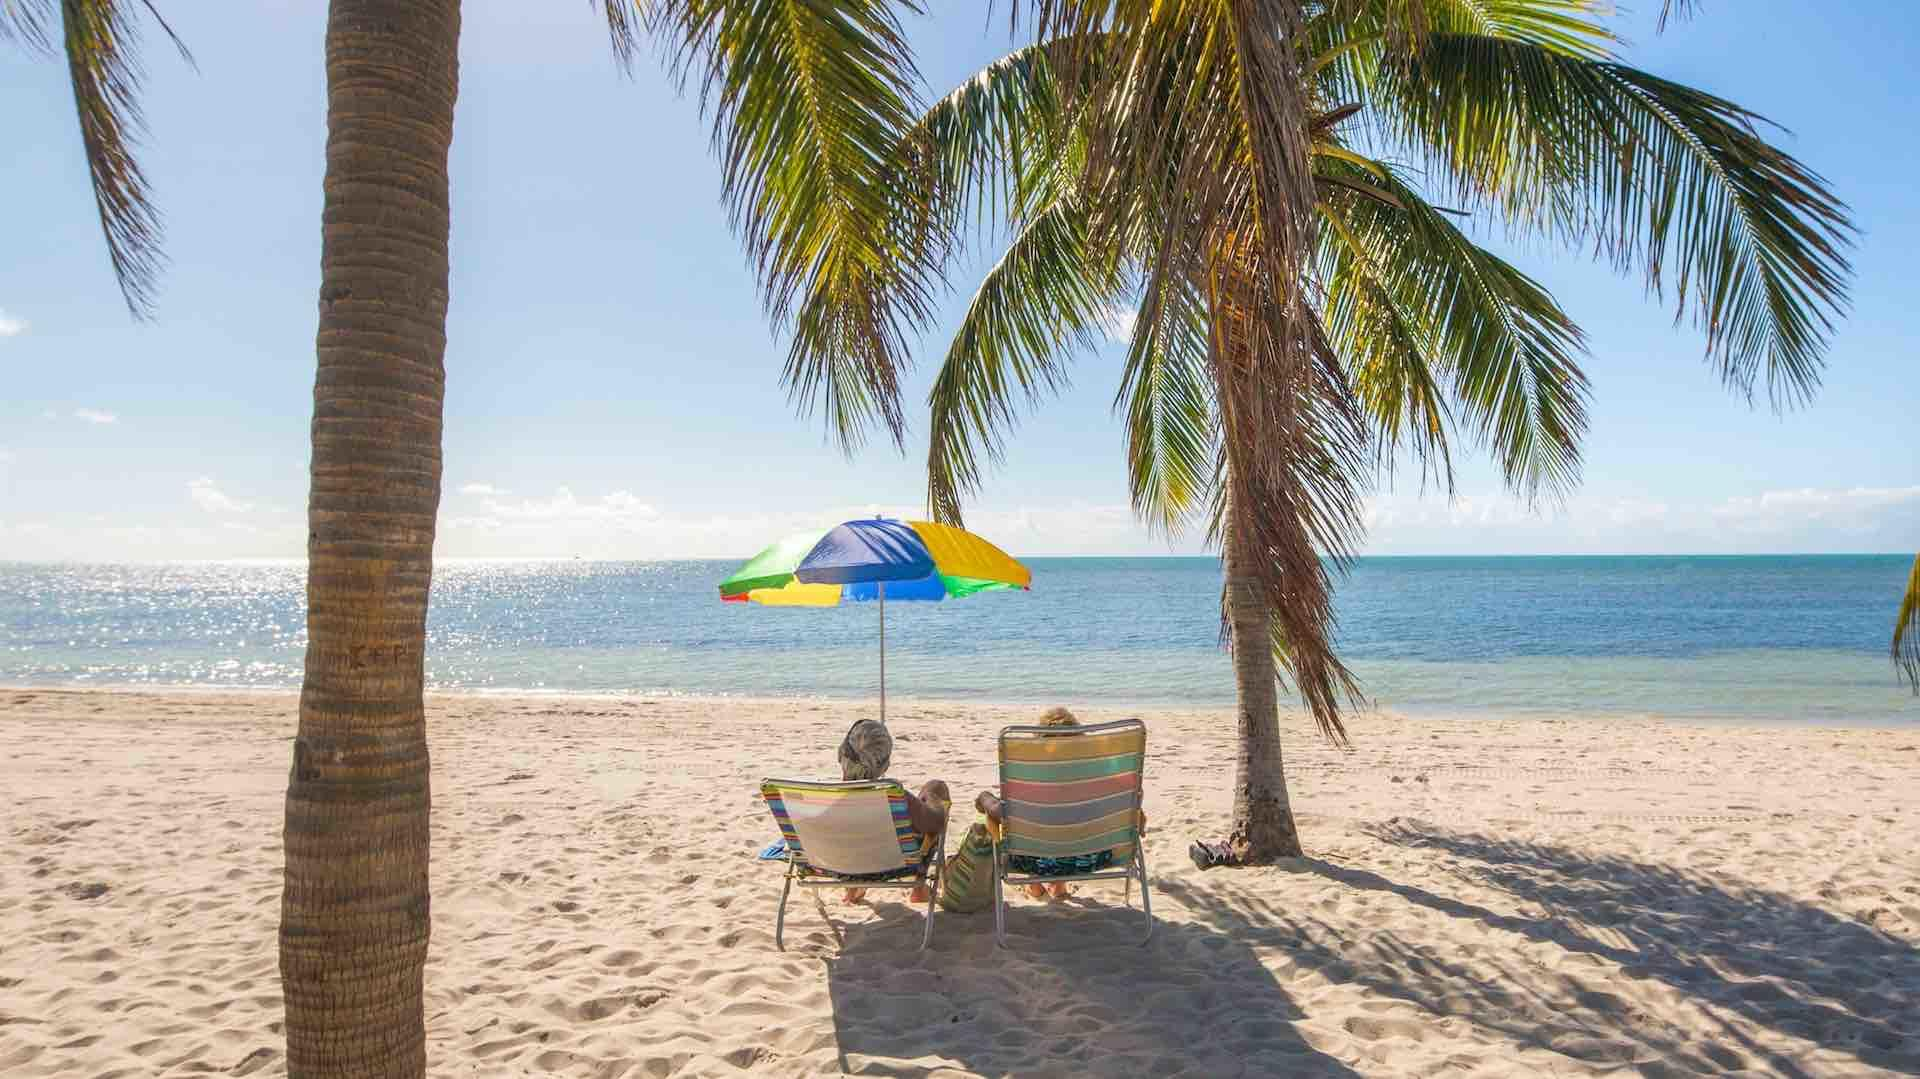 Spend your days at the beach, basking in the beautiful Key West weather...